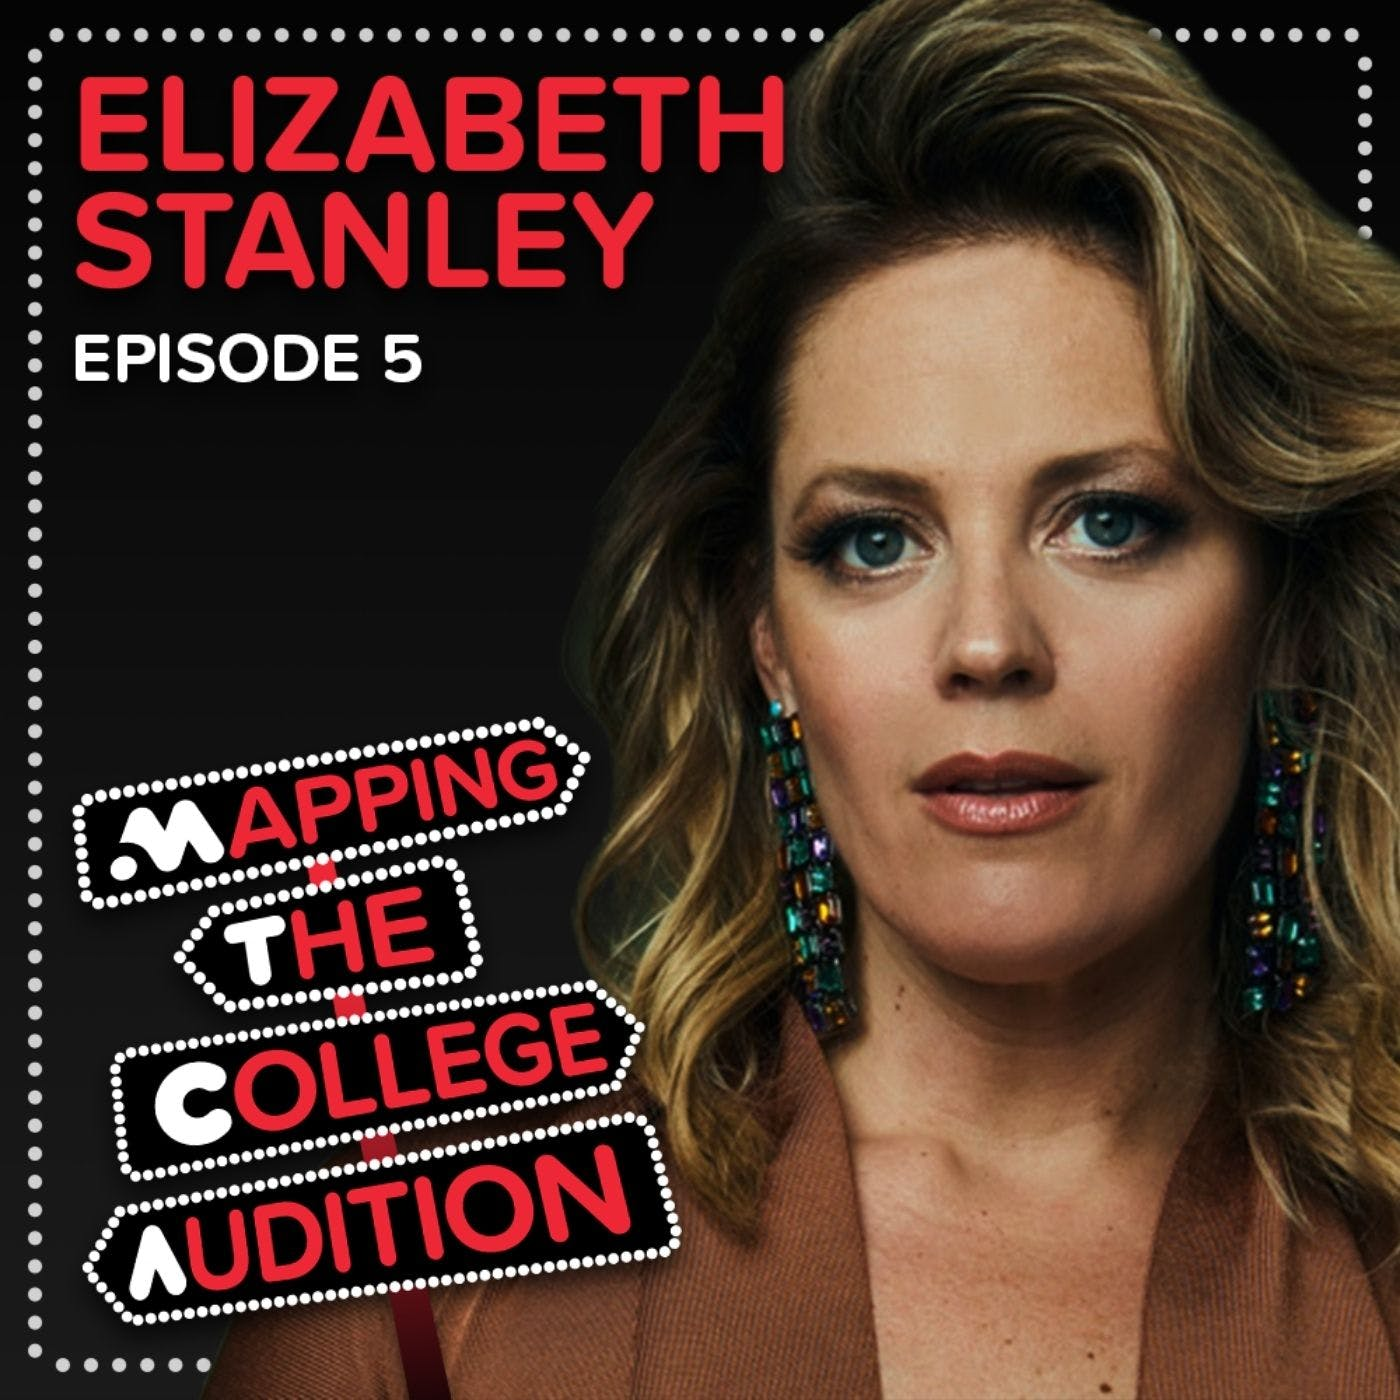 Ep. 5 (AE): Elizabeth Stanley (2020 Tony Nominee for Jagged Little Pill) on Building Your Own MT Degree, The Value of Regional Theatre & Continuing Training